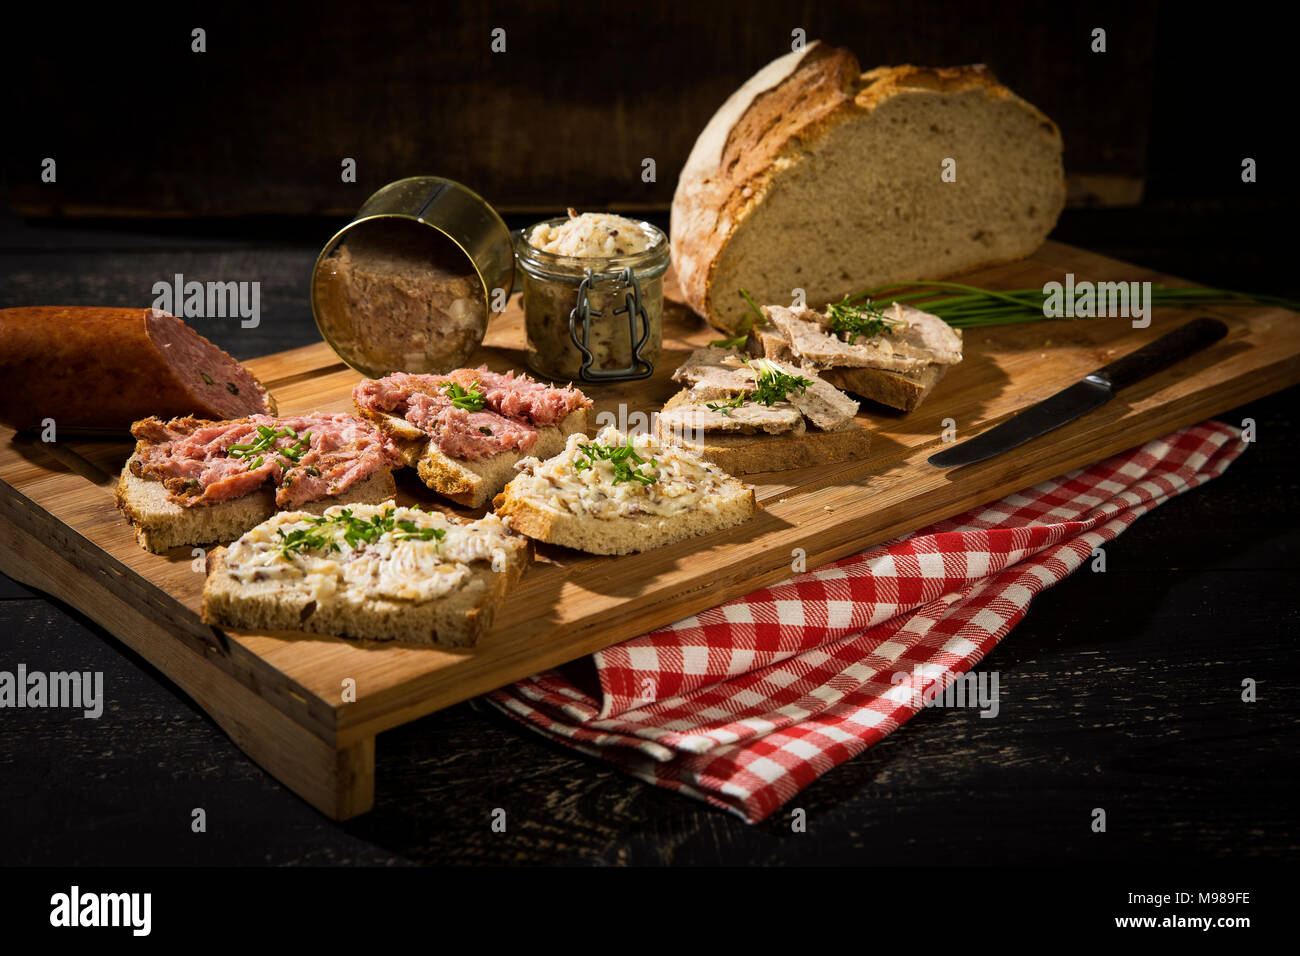 Crusty bread, crackling fat, liver sausage, minced and pork sausage - Stock Image